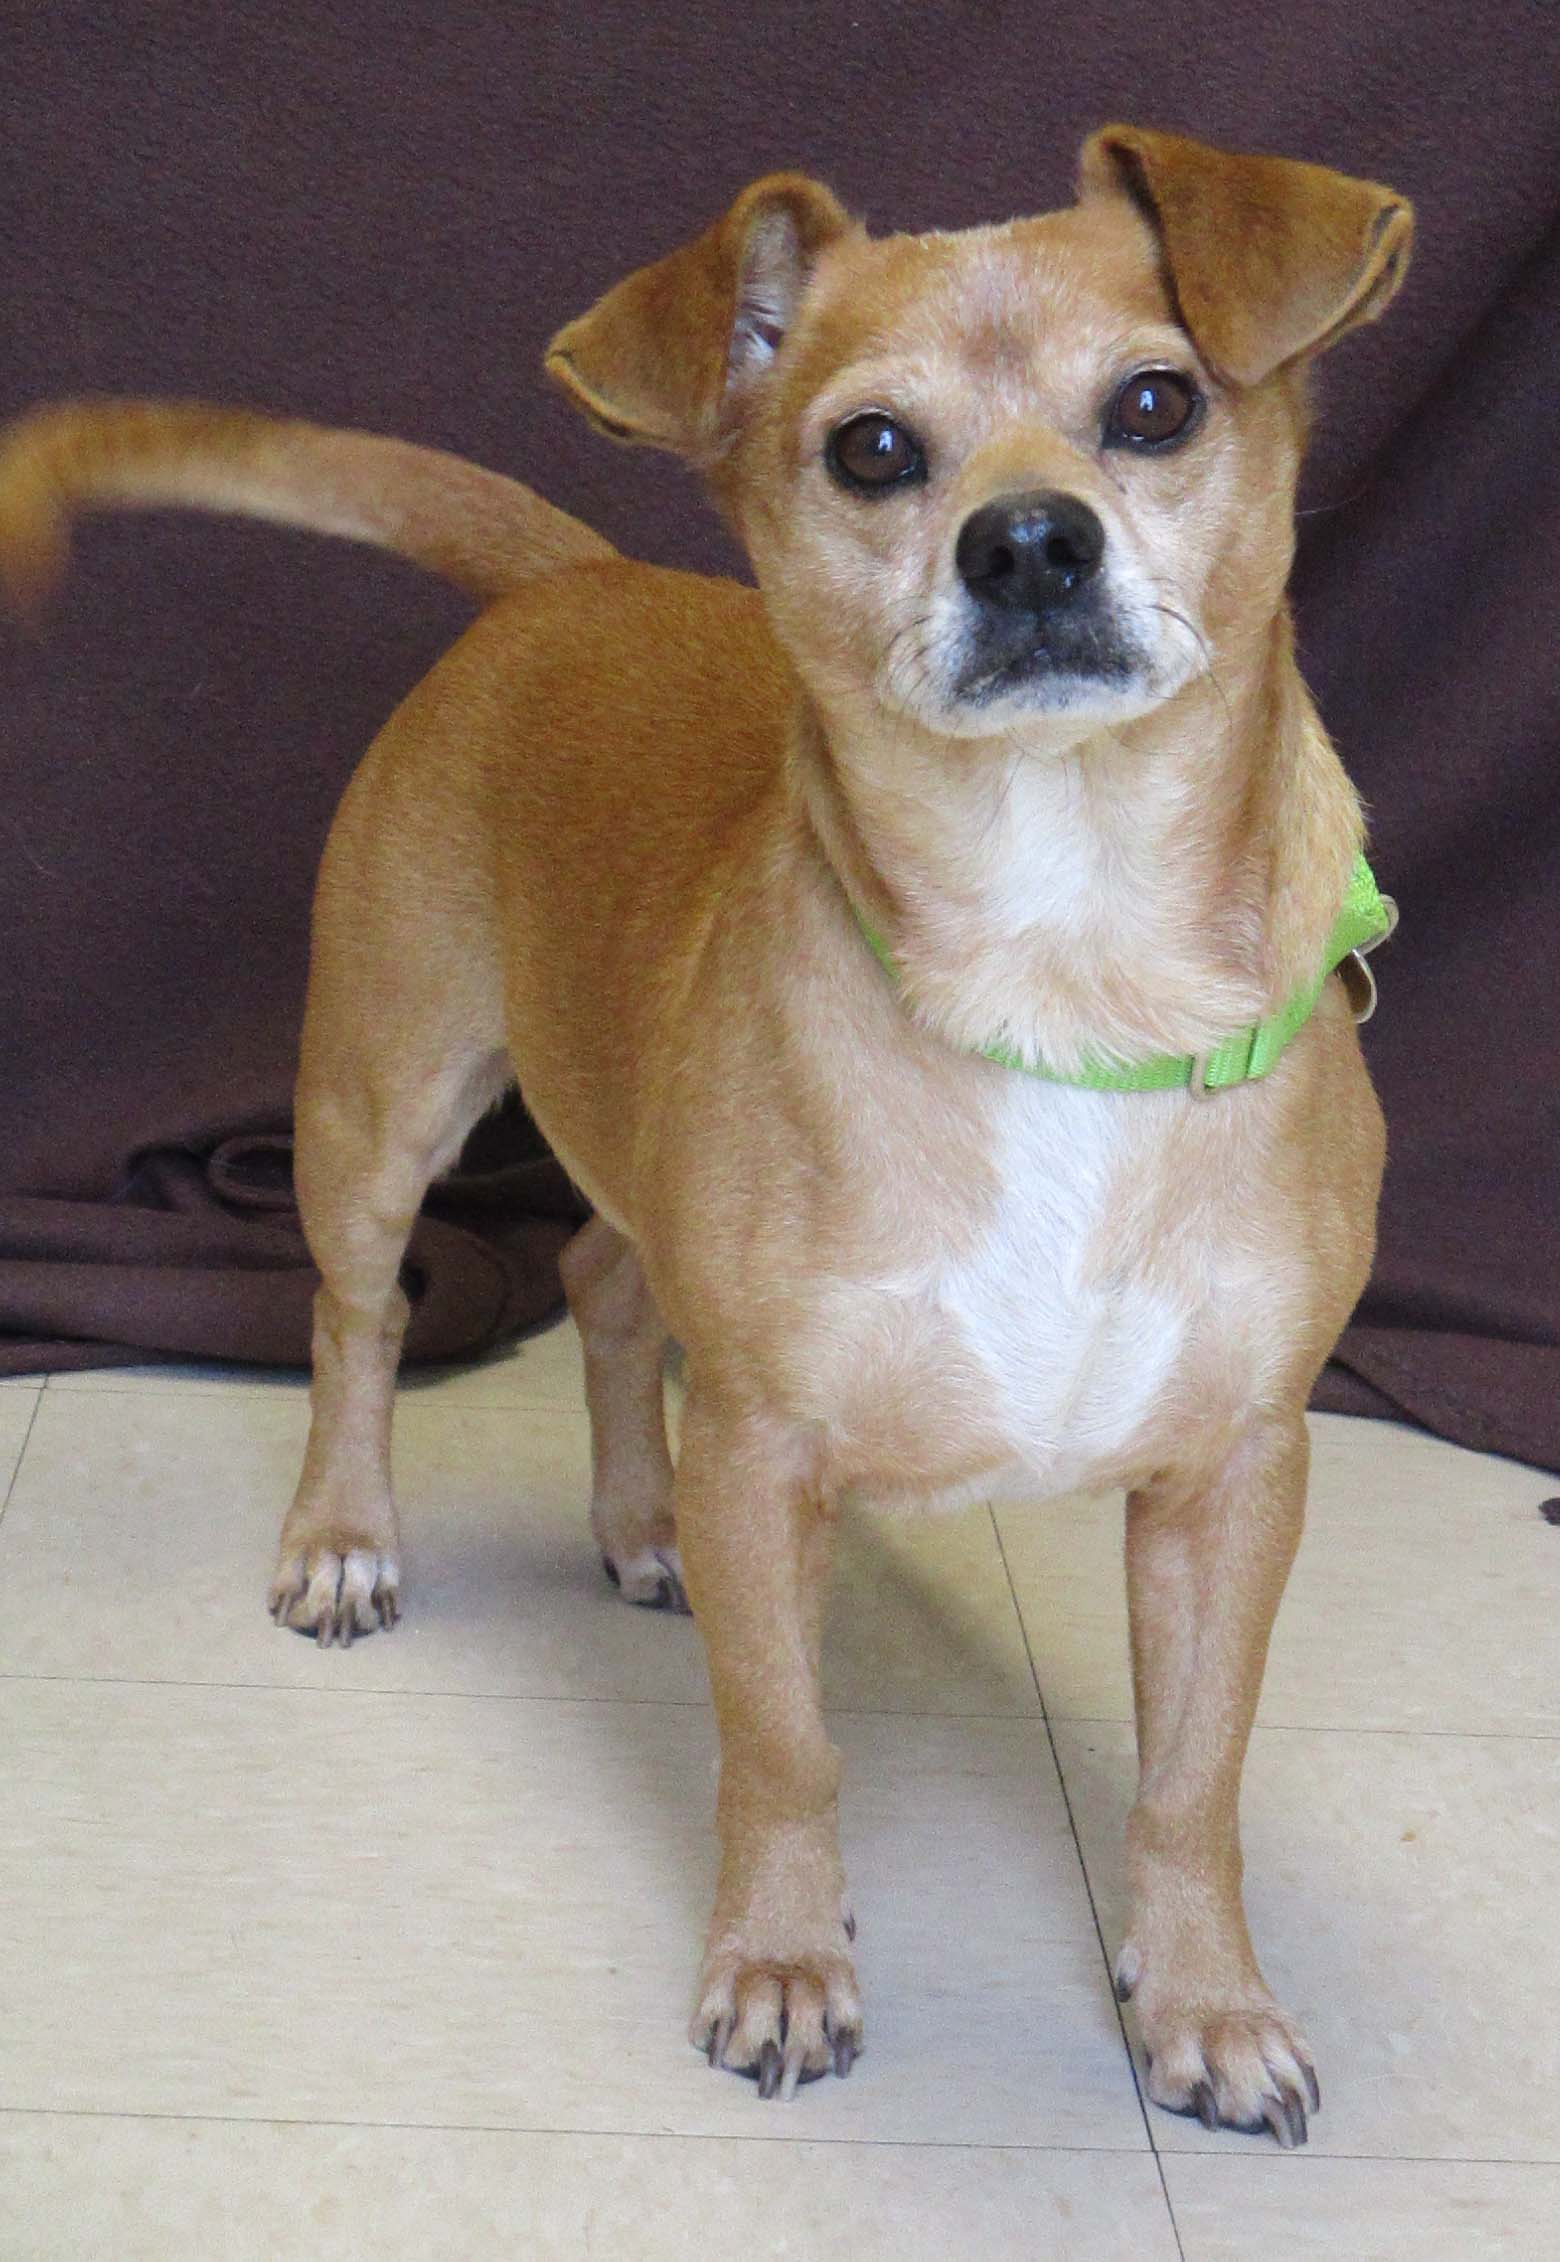 """Guapo is an 8 year old Chihuahua. His name fits him well as it means """"handsome"""" in Spanish. His good looks are accompanied with character and personality. He does have to go to a home with teens and older because he enjoys petting on his terms."""